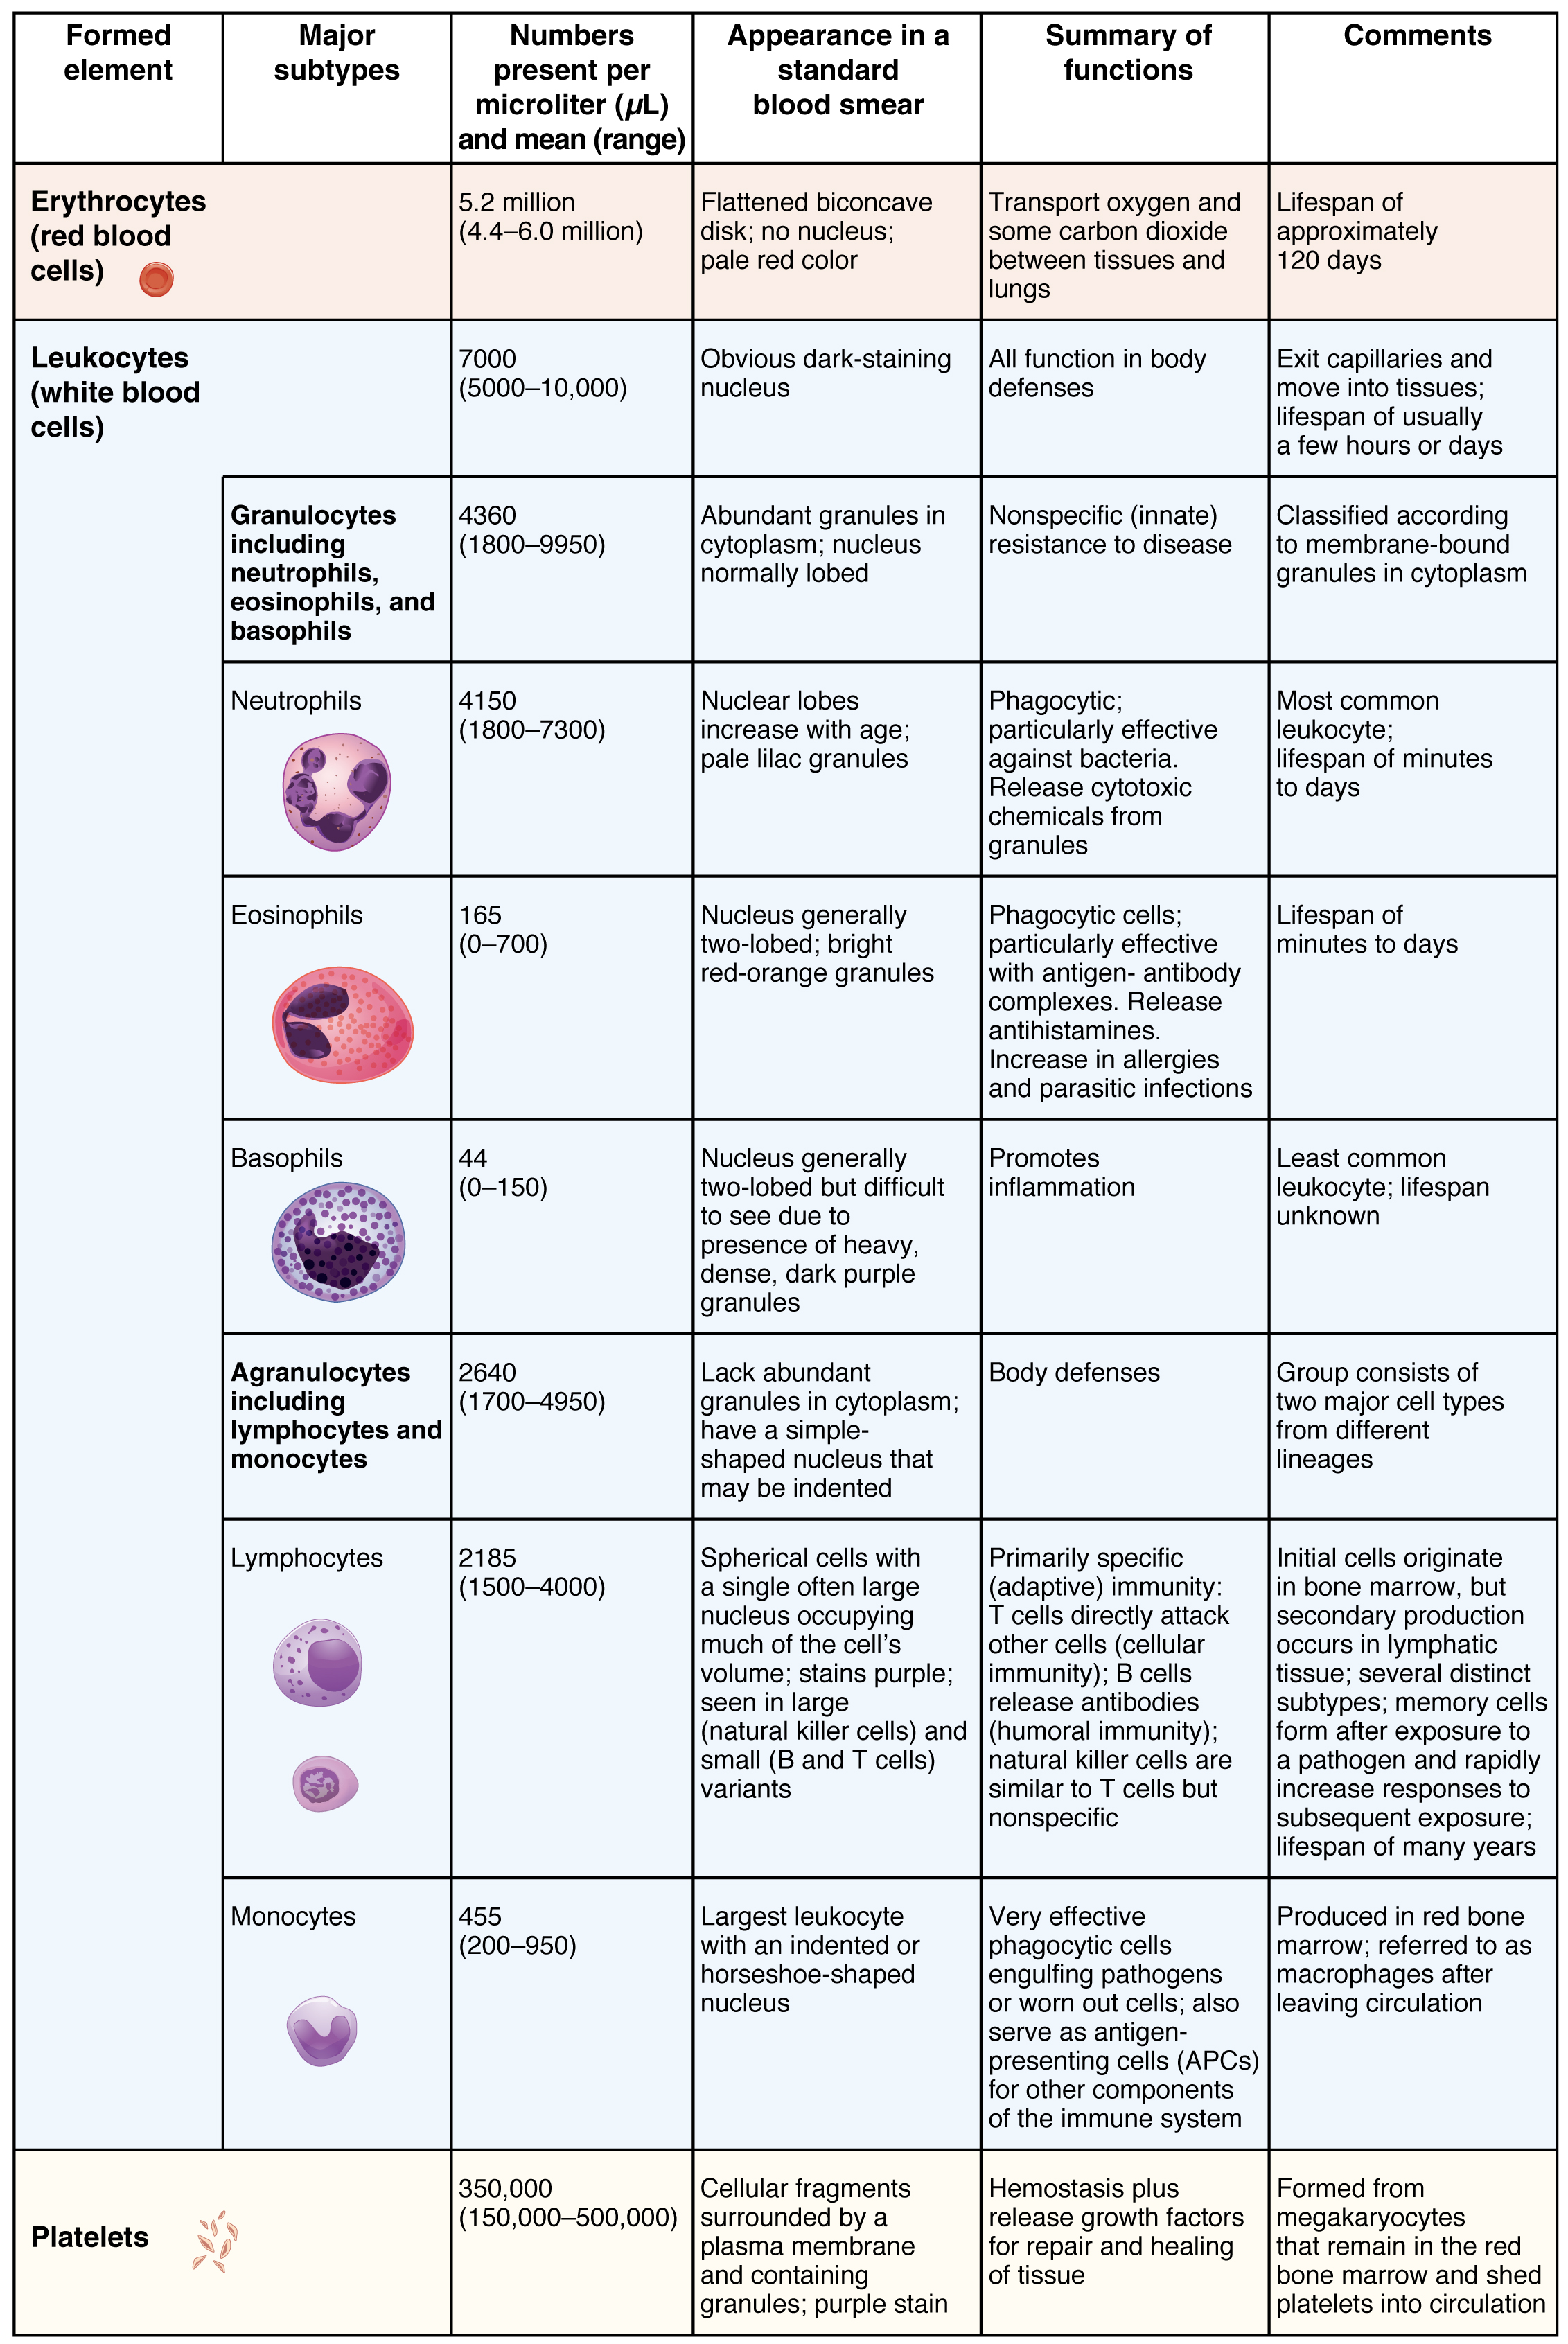 Figure 18.5 Summary of Formed Elements in Blood